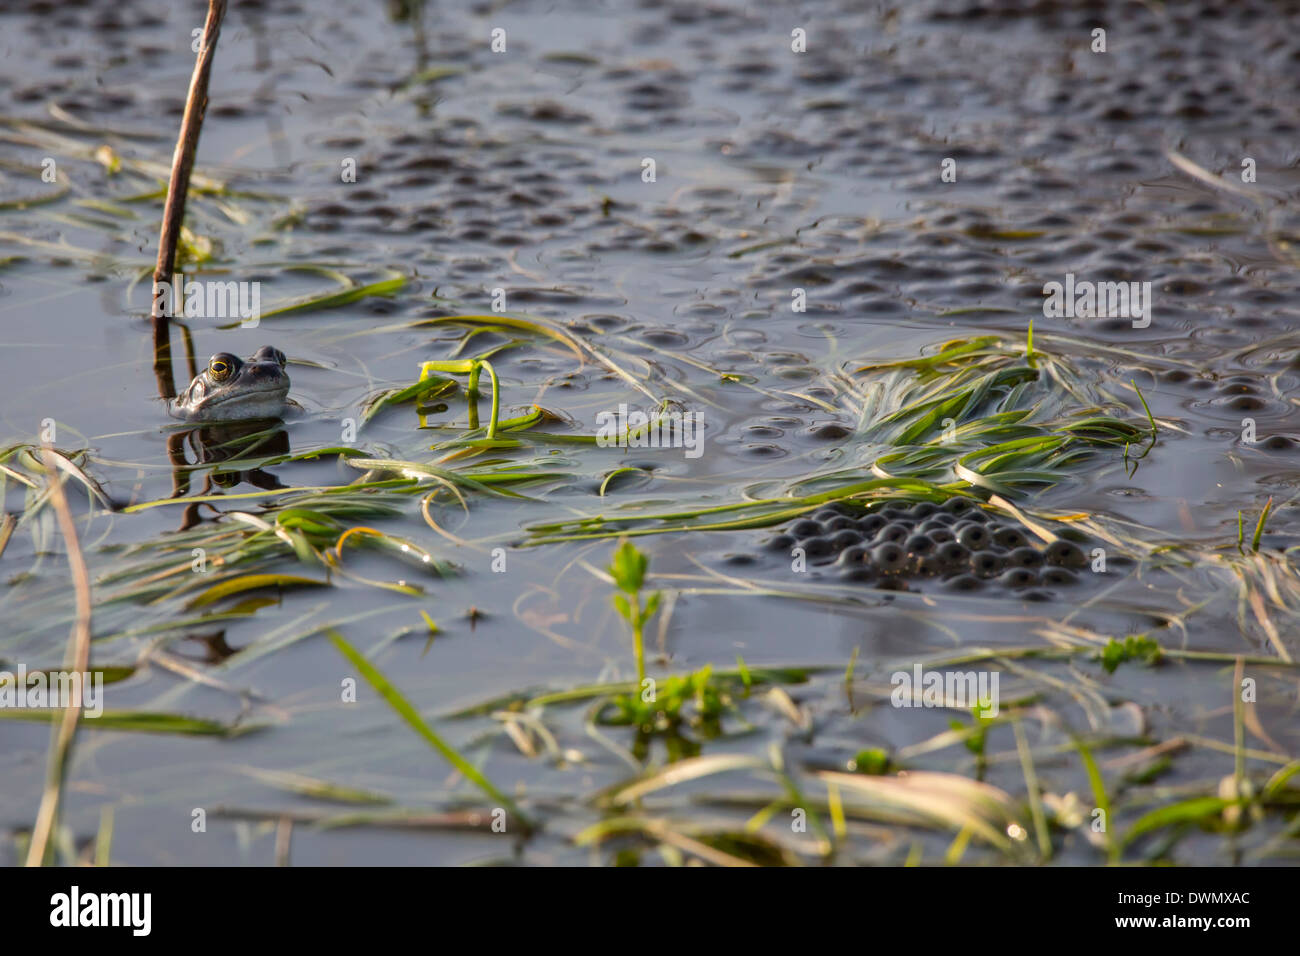 moorfrog (Rana arvalis) ( temporarily blue) overlooking spawn at National Park de Groote Peel in the Netherlands. - Stock Image